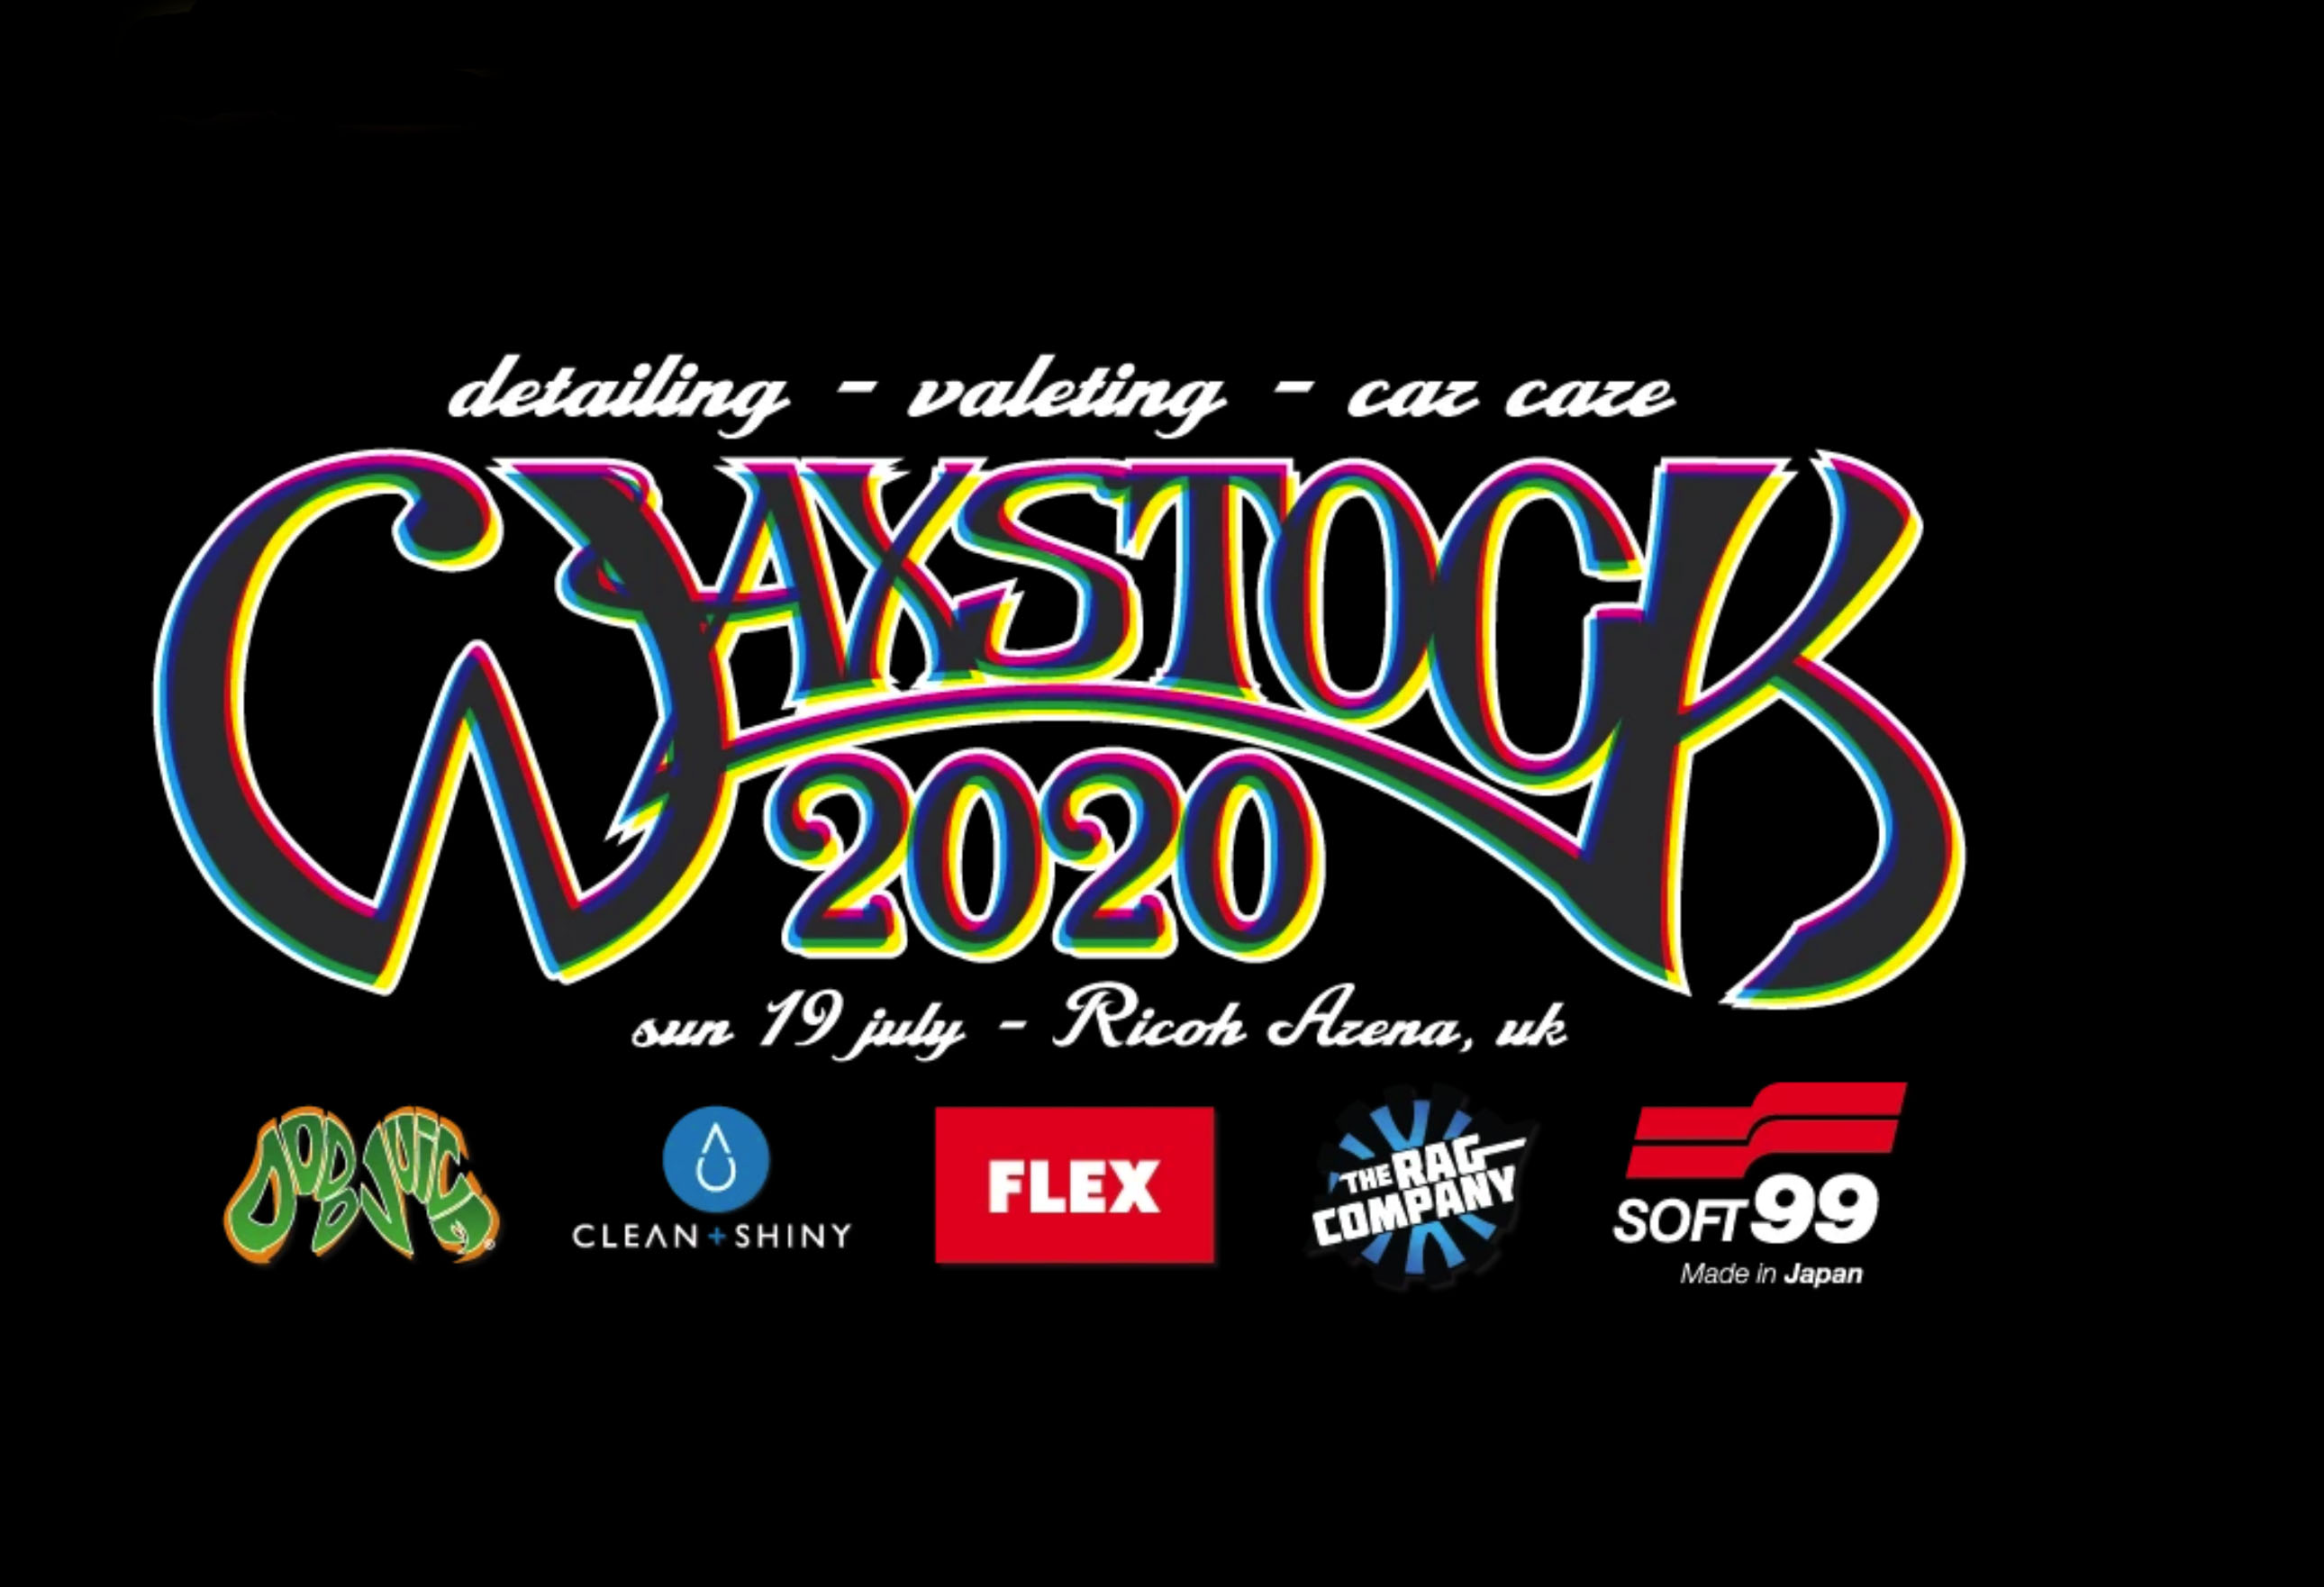 The Waxstock